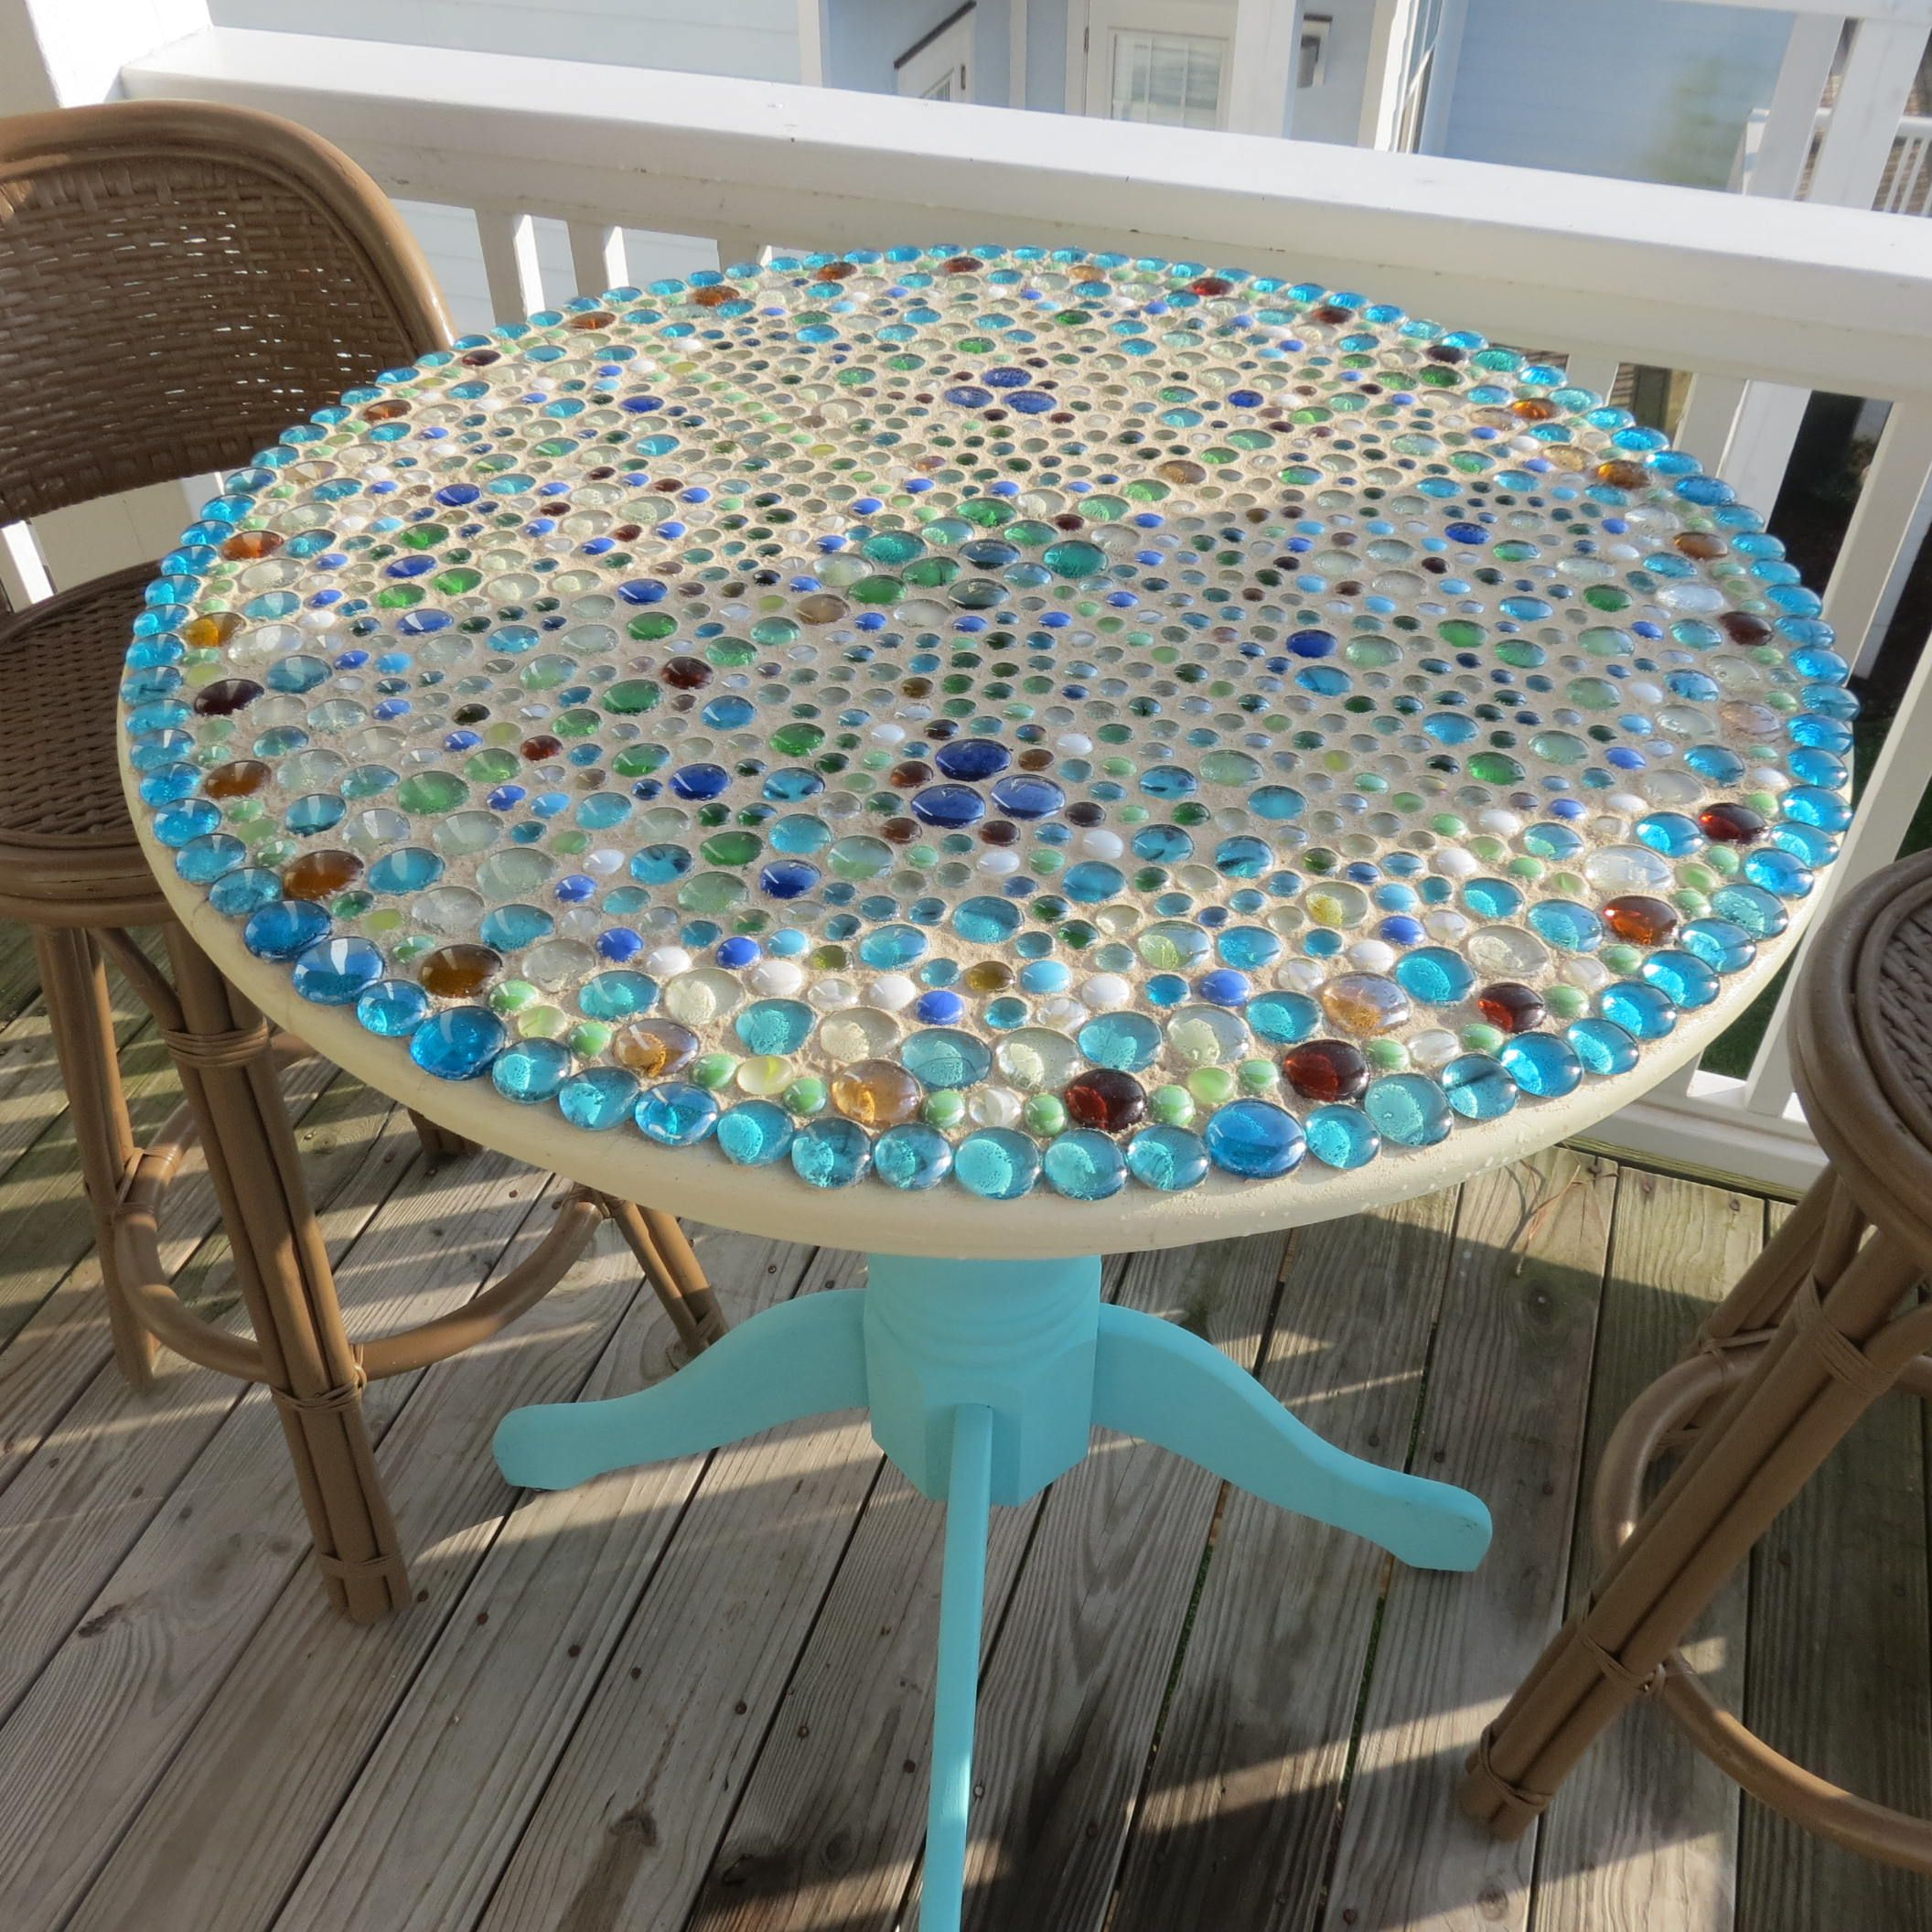 Outdoor table top ideas - Mosaic Patio Table